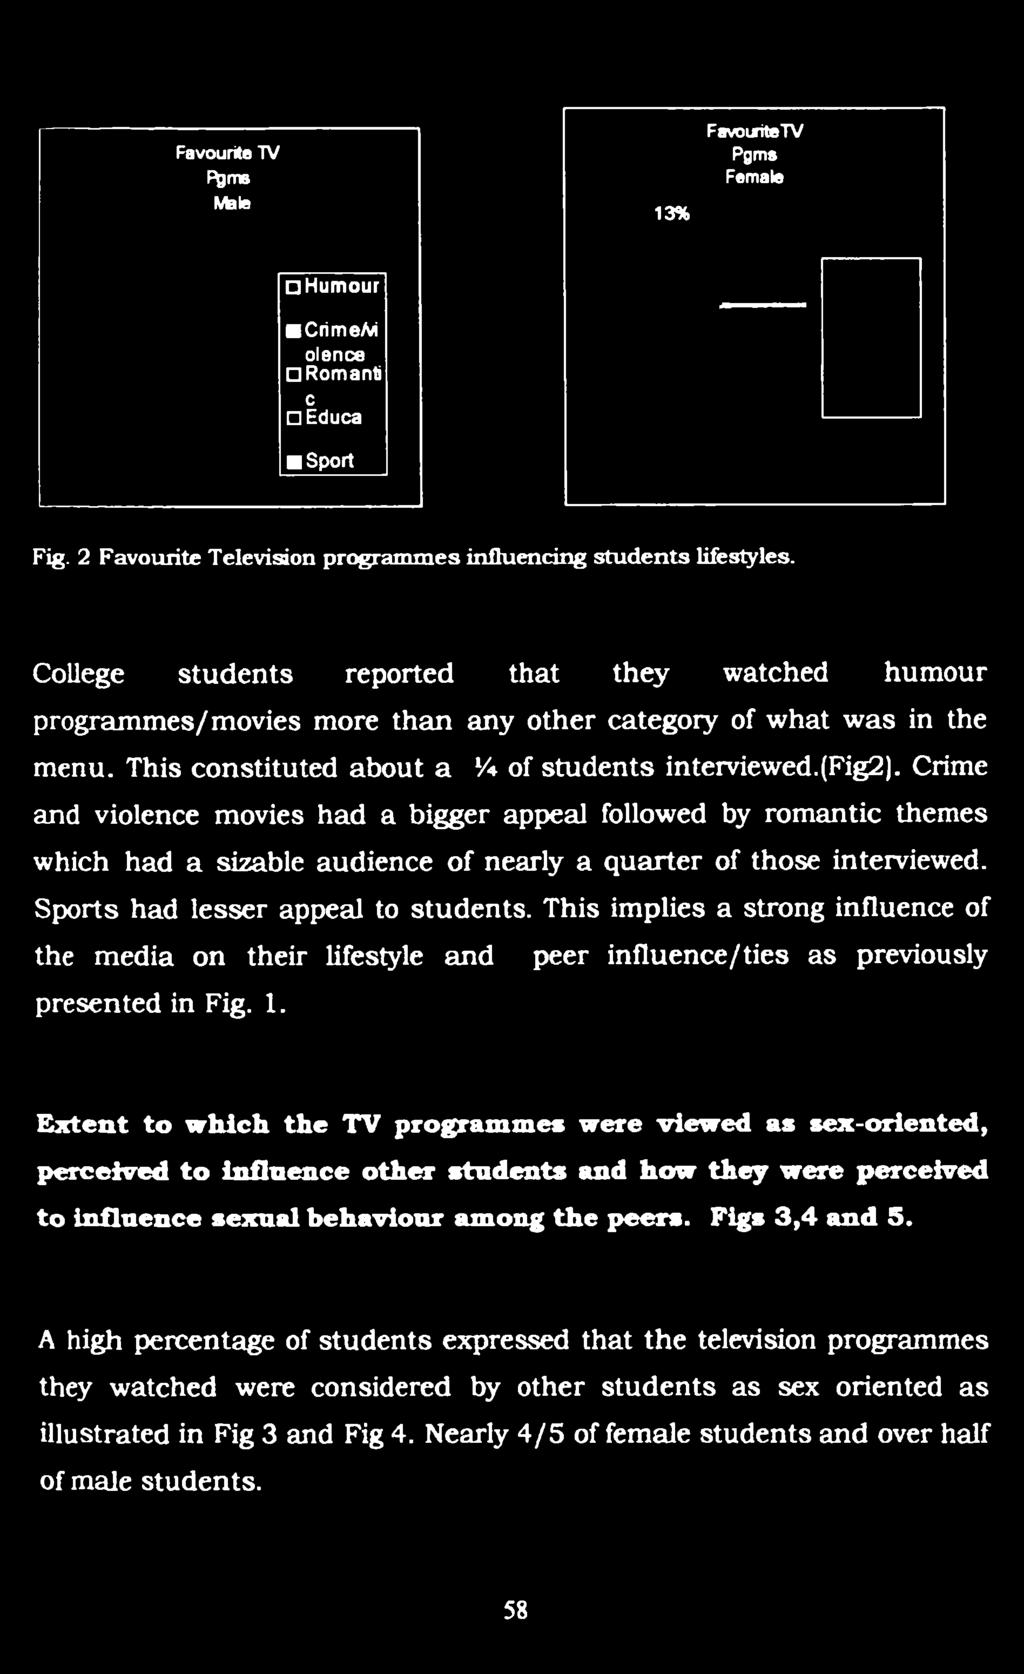 College students reported that they watched humour programmes/movies more than any other category of what was in the menu.